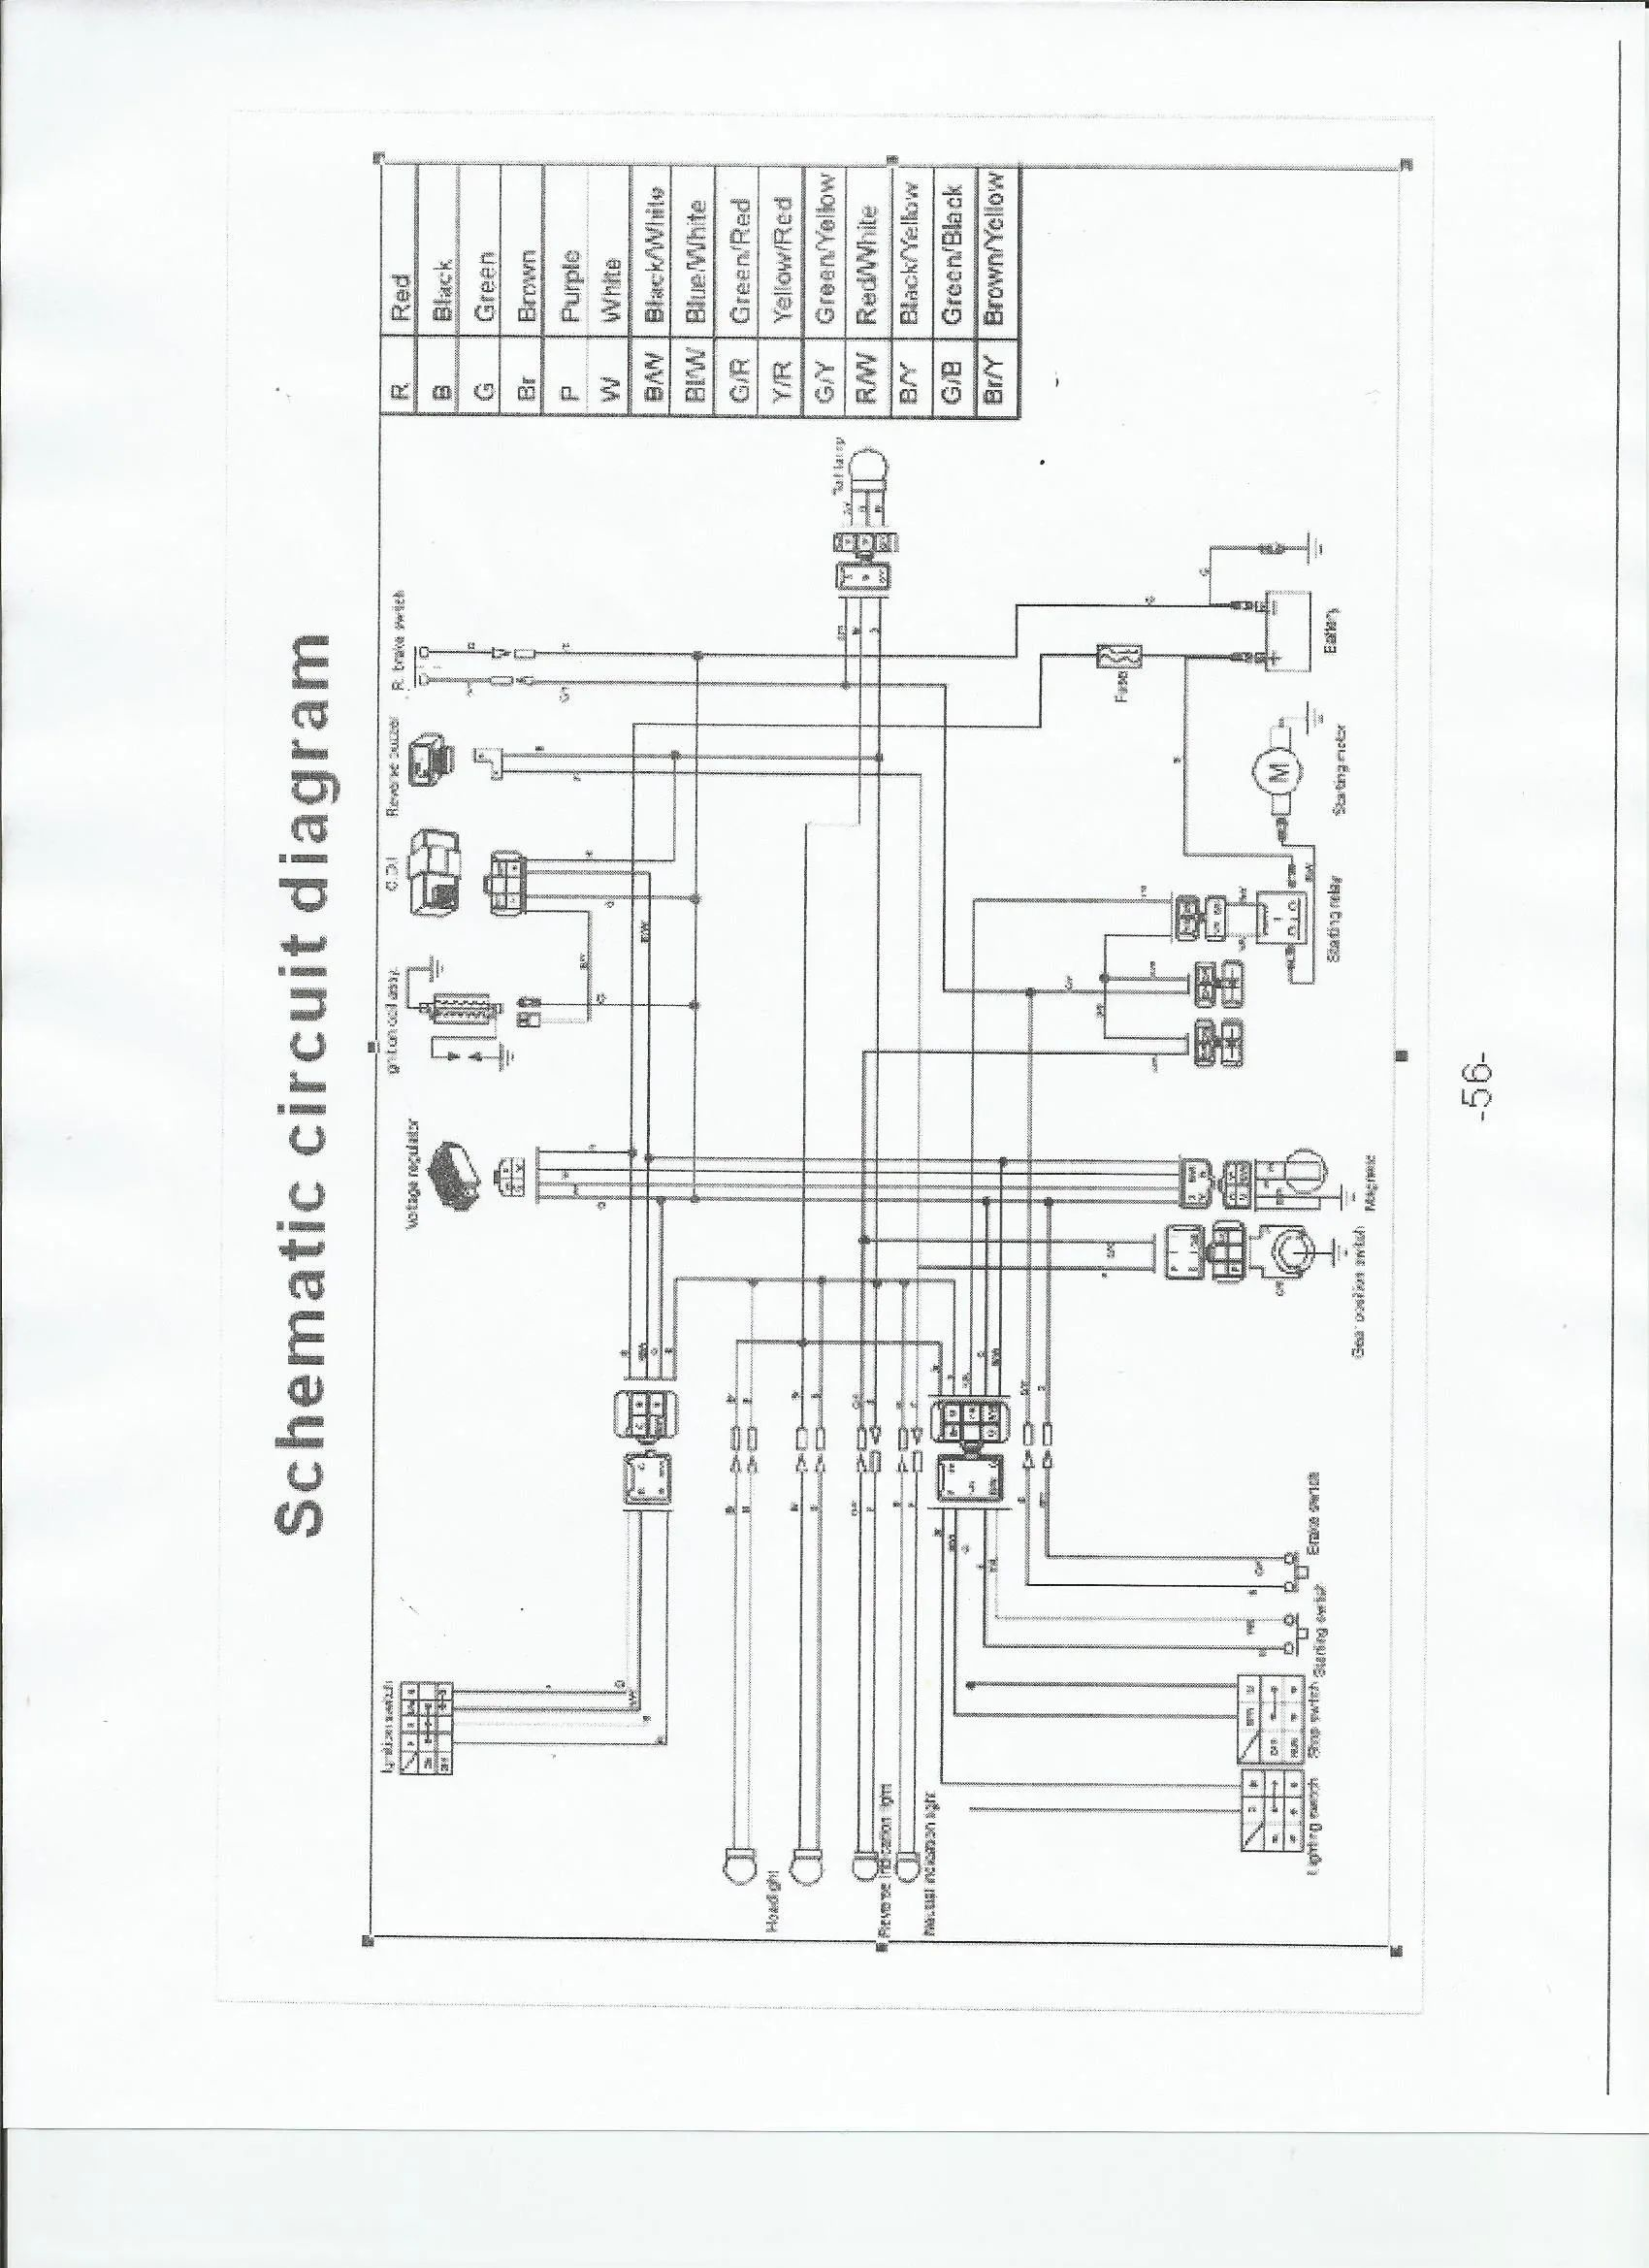 wiring diagram as well 110 atv wiring diagram on wiring diagram